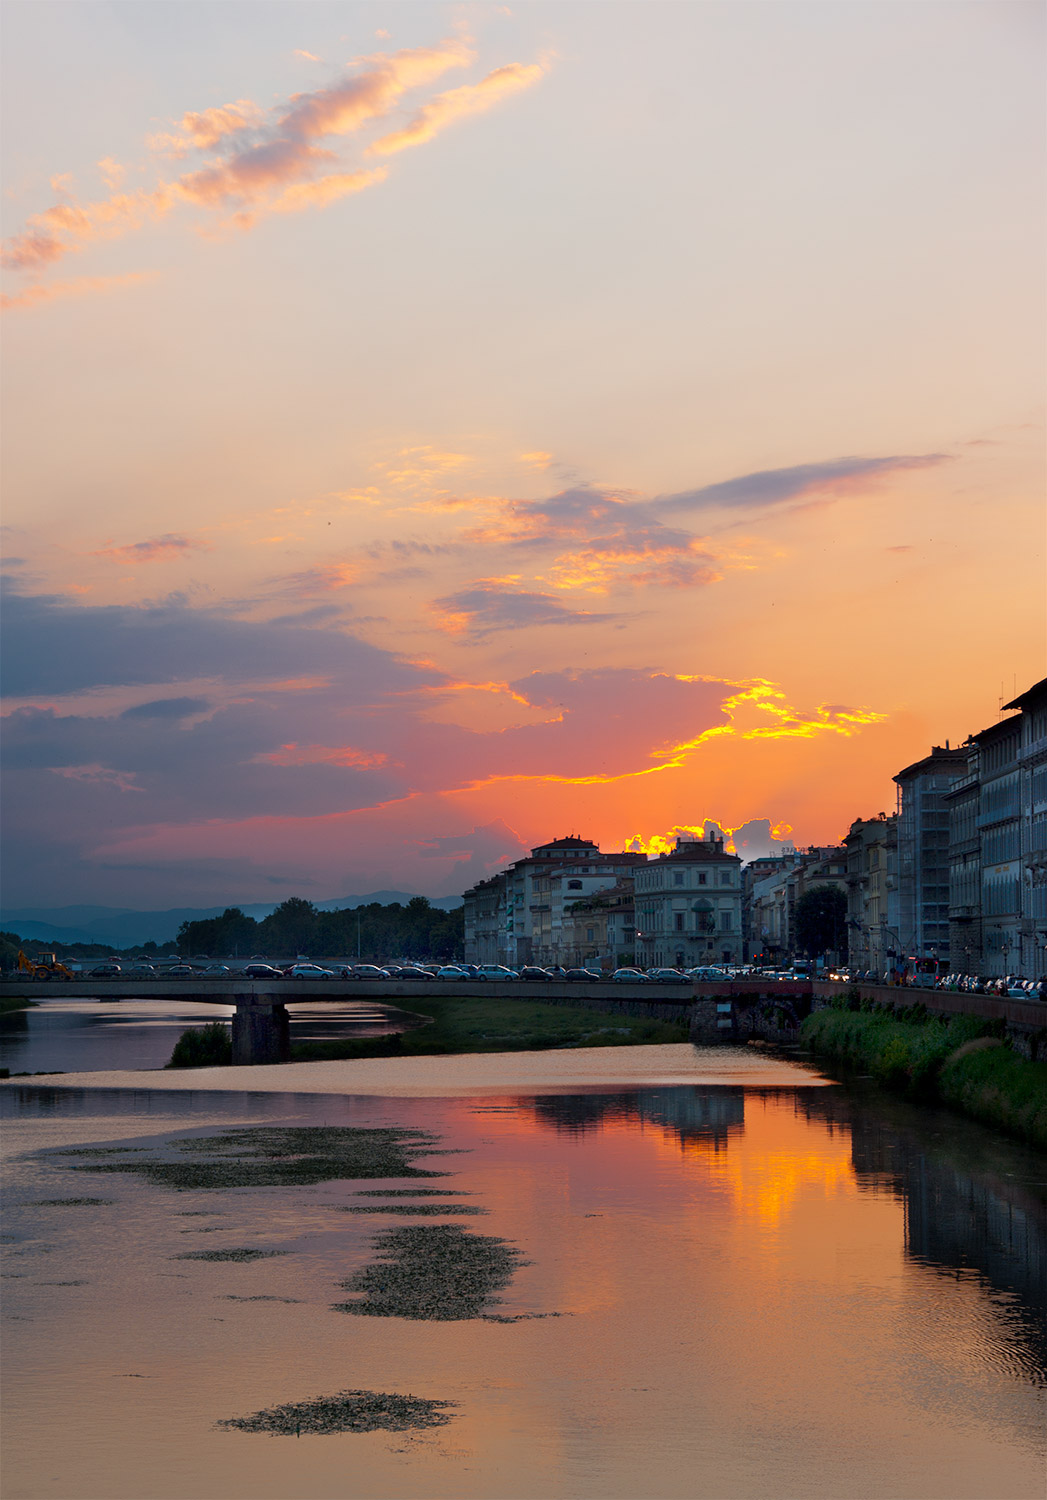 Florence Italy at dusk with Arno river view.